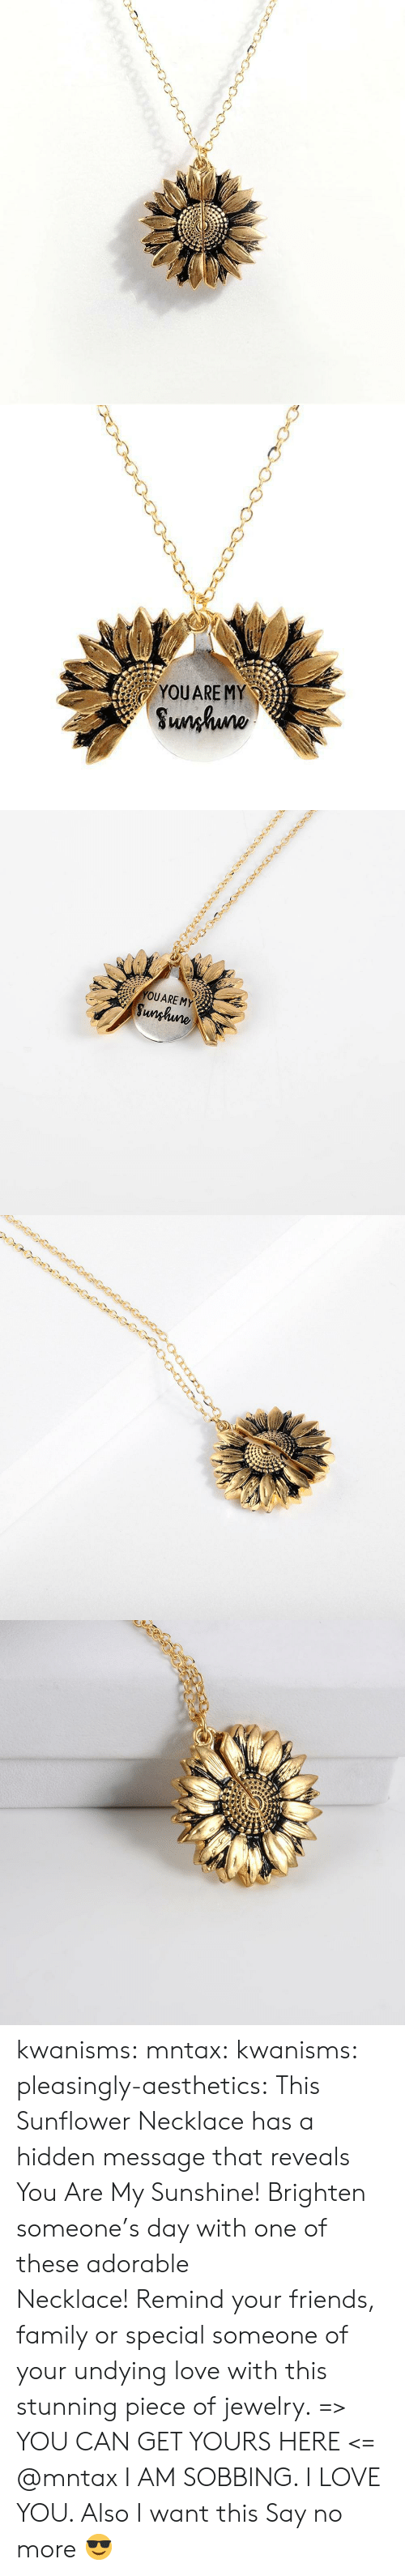 Family, Friends, and Love: YOUARE MY  Sunhuno   YOUARE MY  Sunghune kwanisms:  mntax:  kwanisms:  pleasingly-aesthetics:  This Sunflower Necklace has a hidden message that reveals You Are My Sunshine! Brighten someone's day with one of these adorable Necklace!Remind your friends, family or special someone of your undying love with this stunning piece of jewelry. => YOU CAN GET YOURS HERE <=   @mntax   I AM SOBBING. I LOVE YOU. Also I want this  Say no more 😎